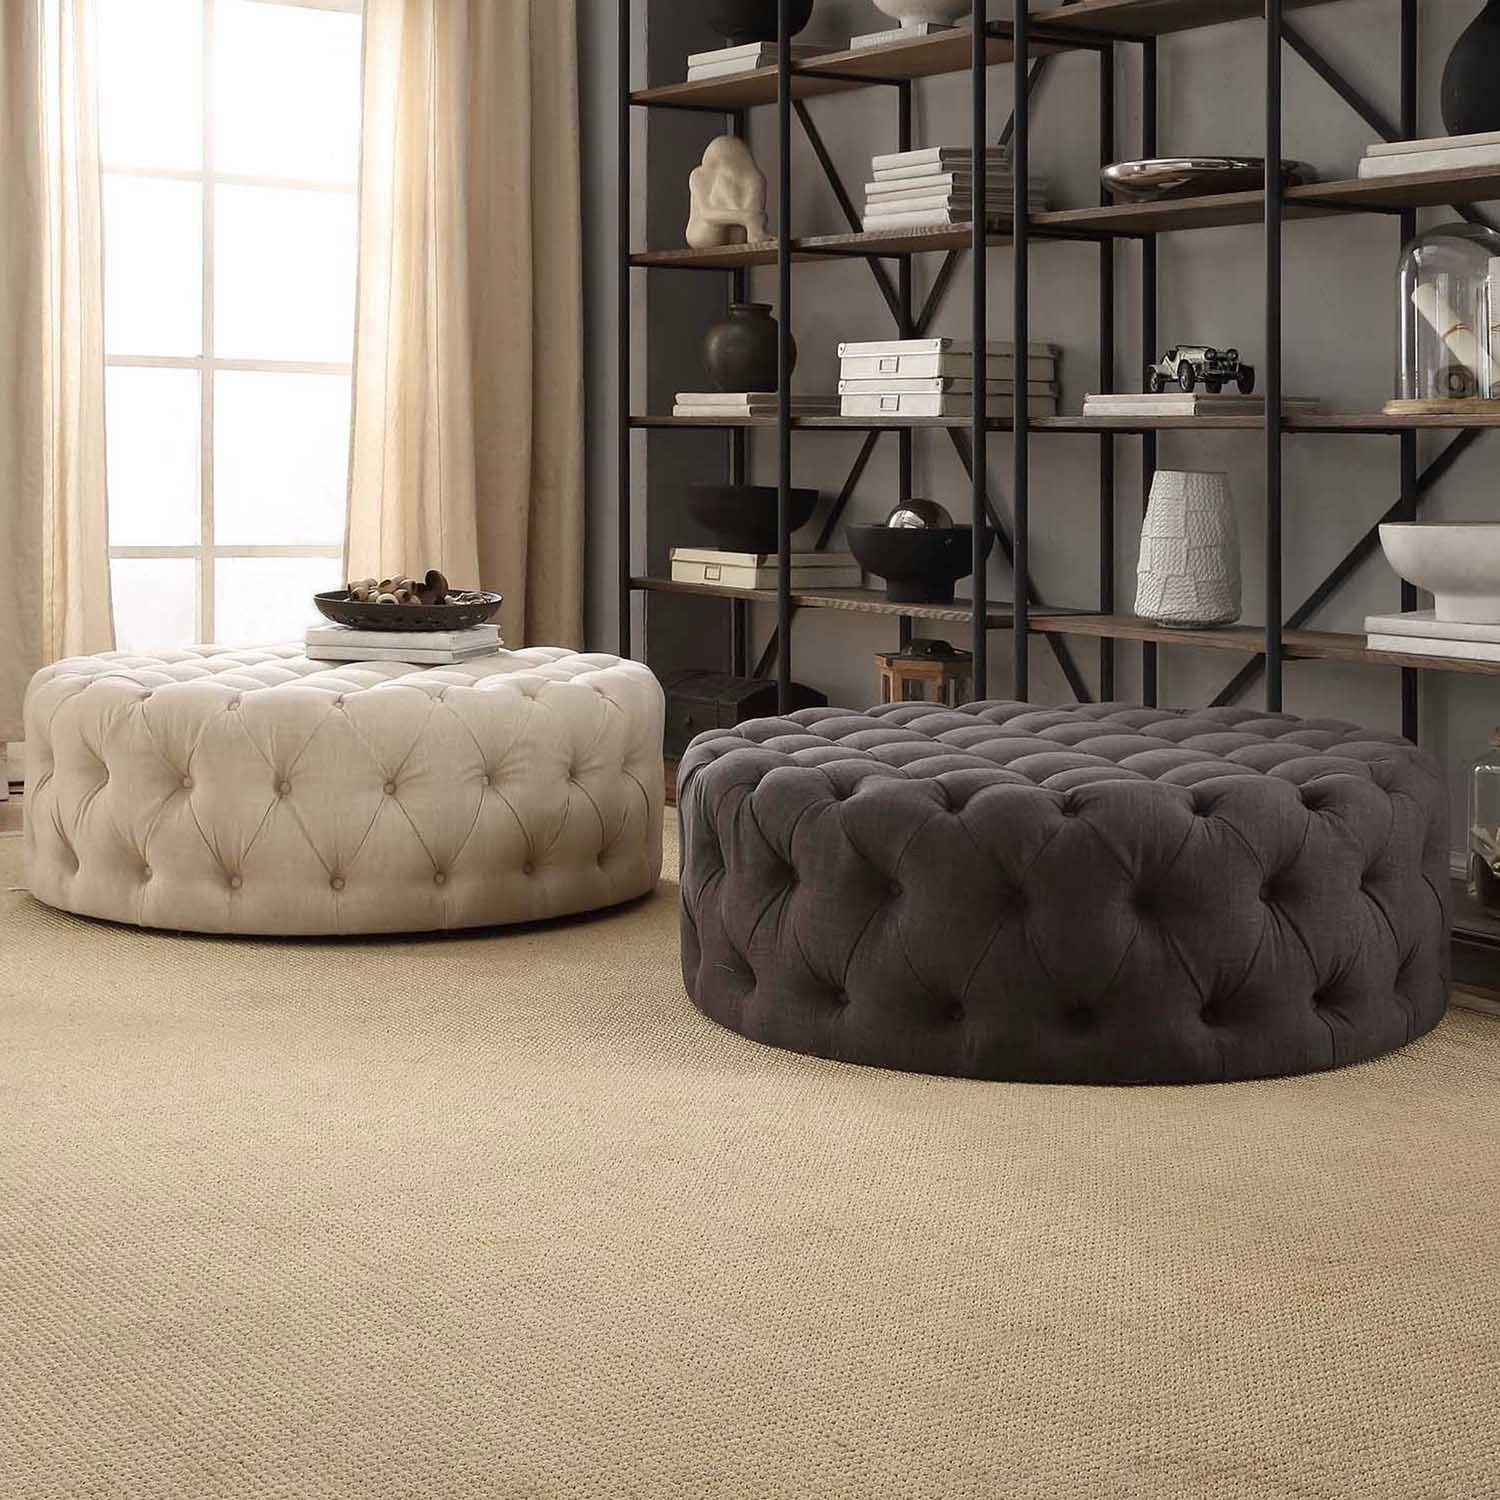 Footstool Coffee Table Storage